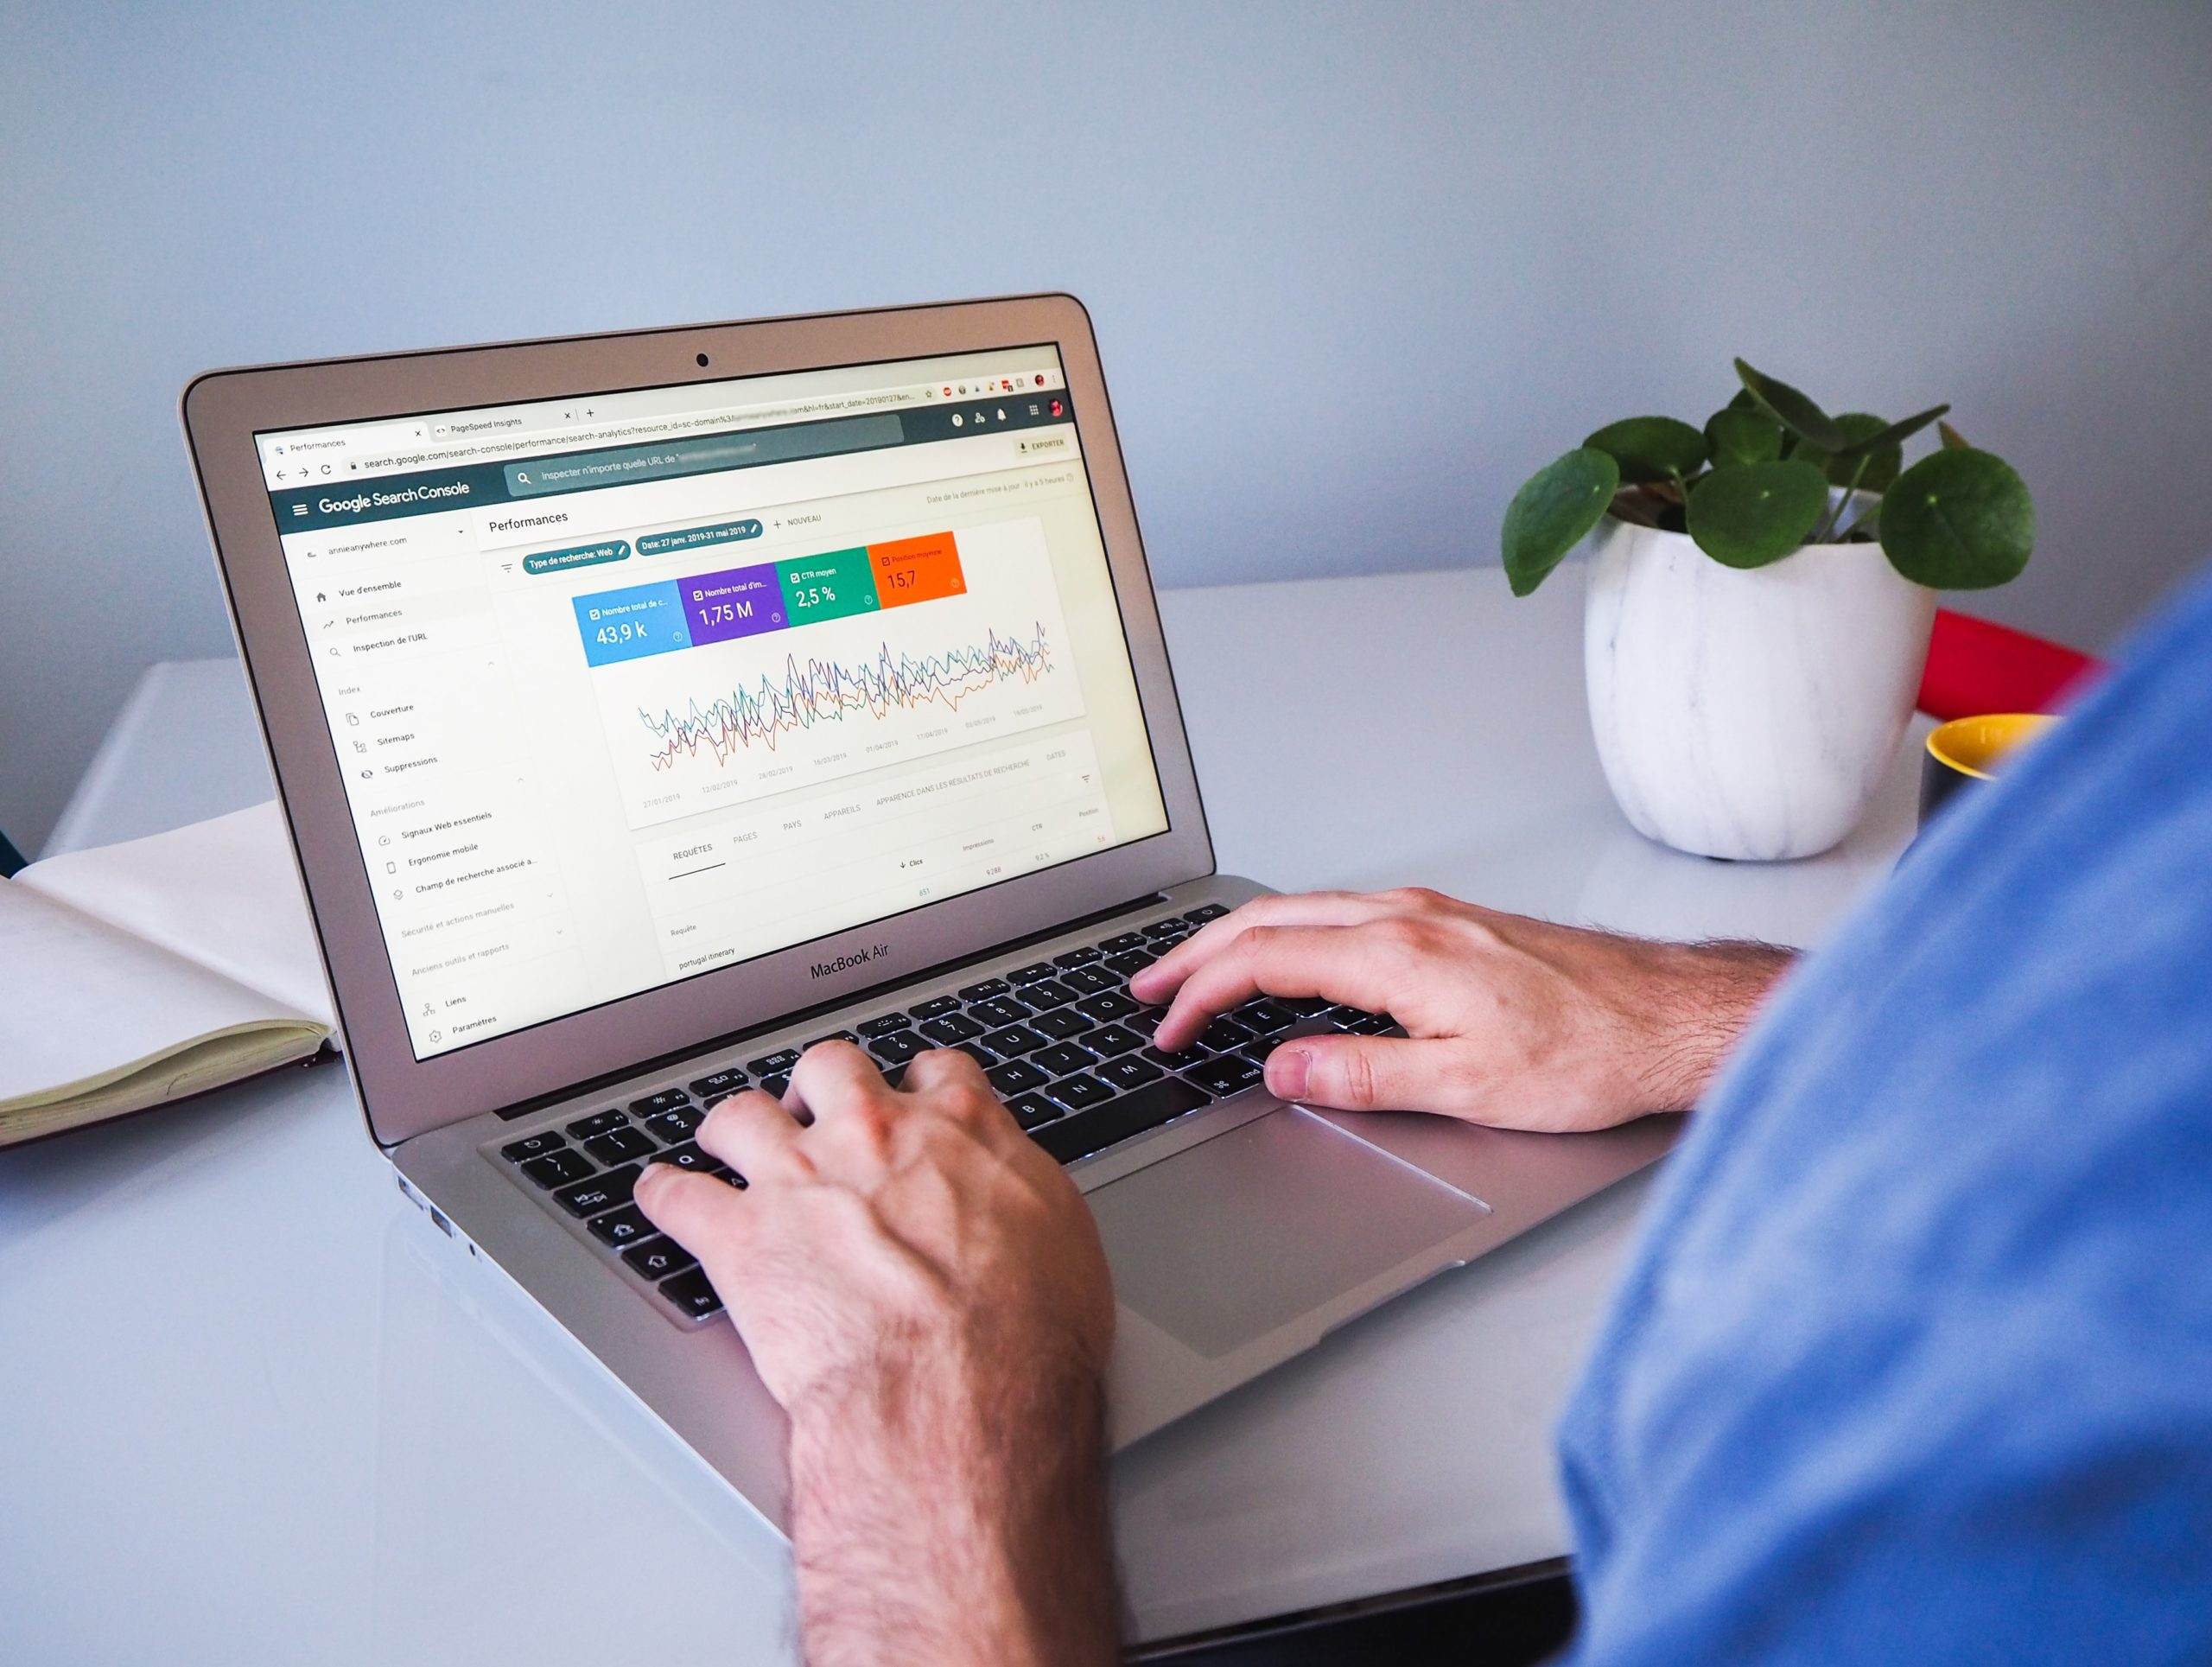 hands typing on laptop with google analytics screen